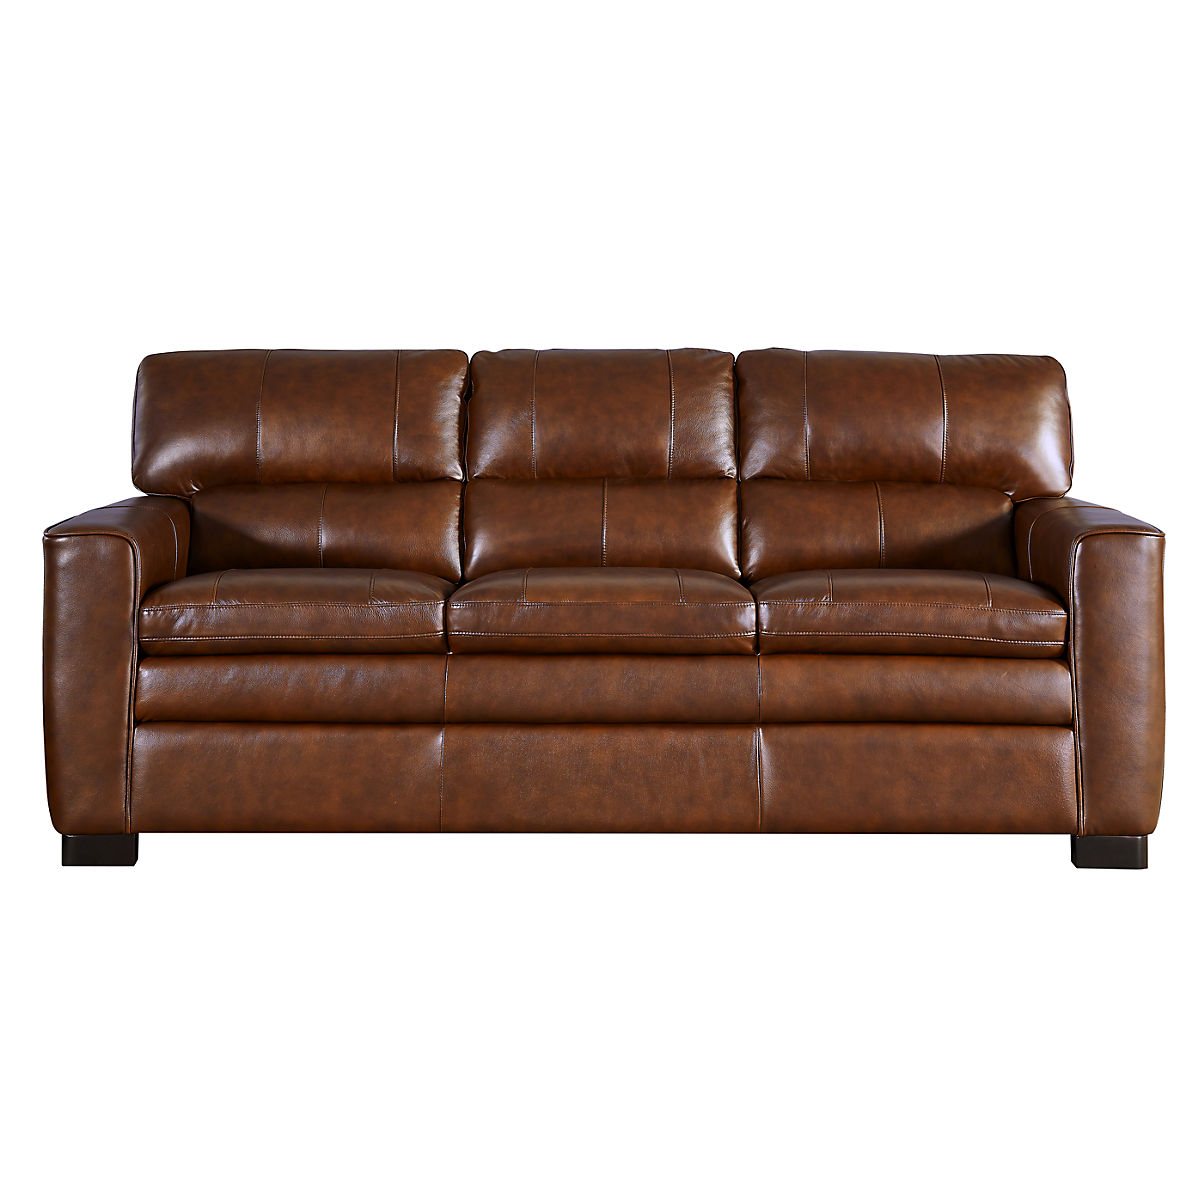 Leland Leather Sofa | Star Furniture